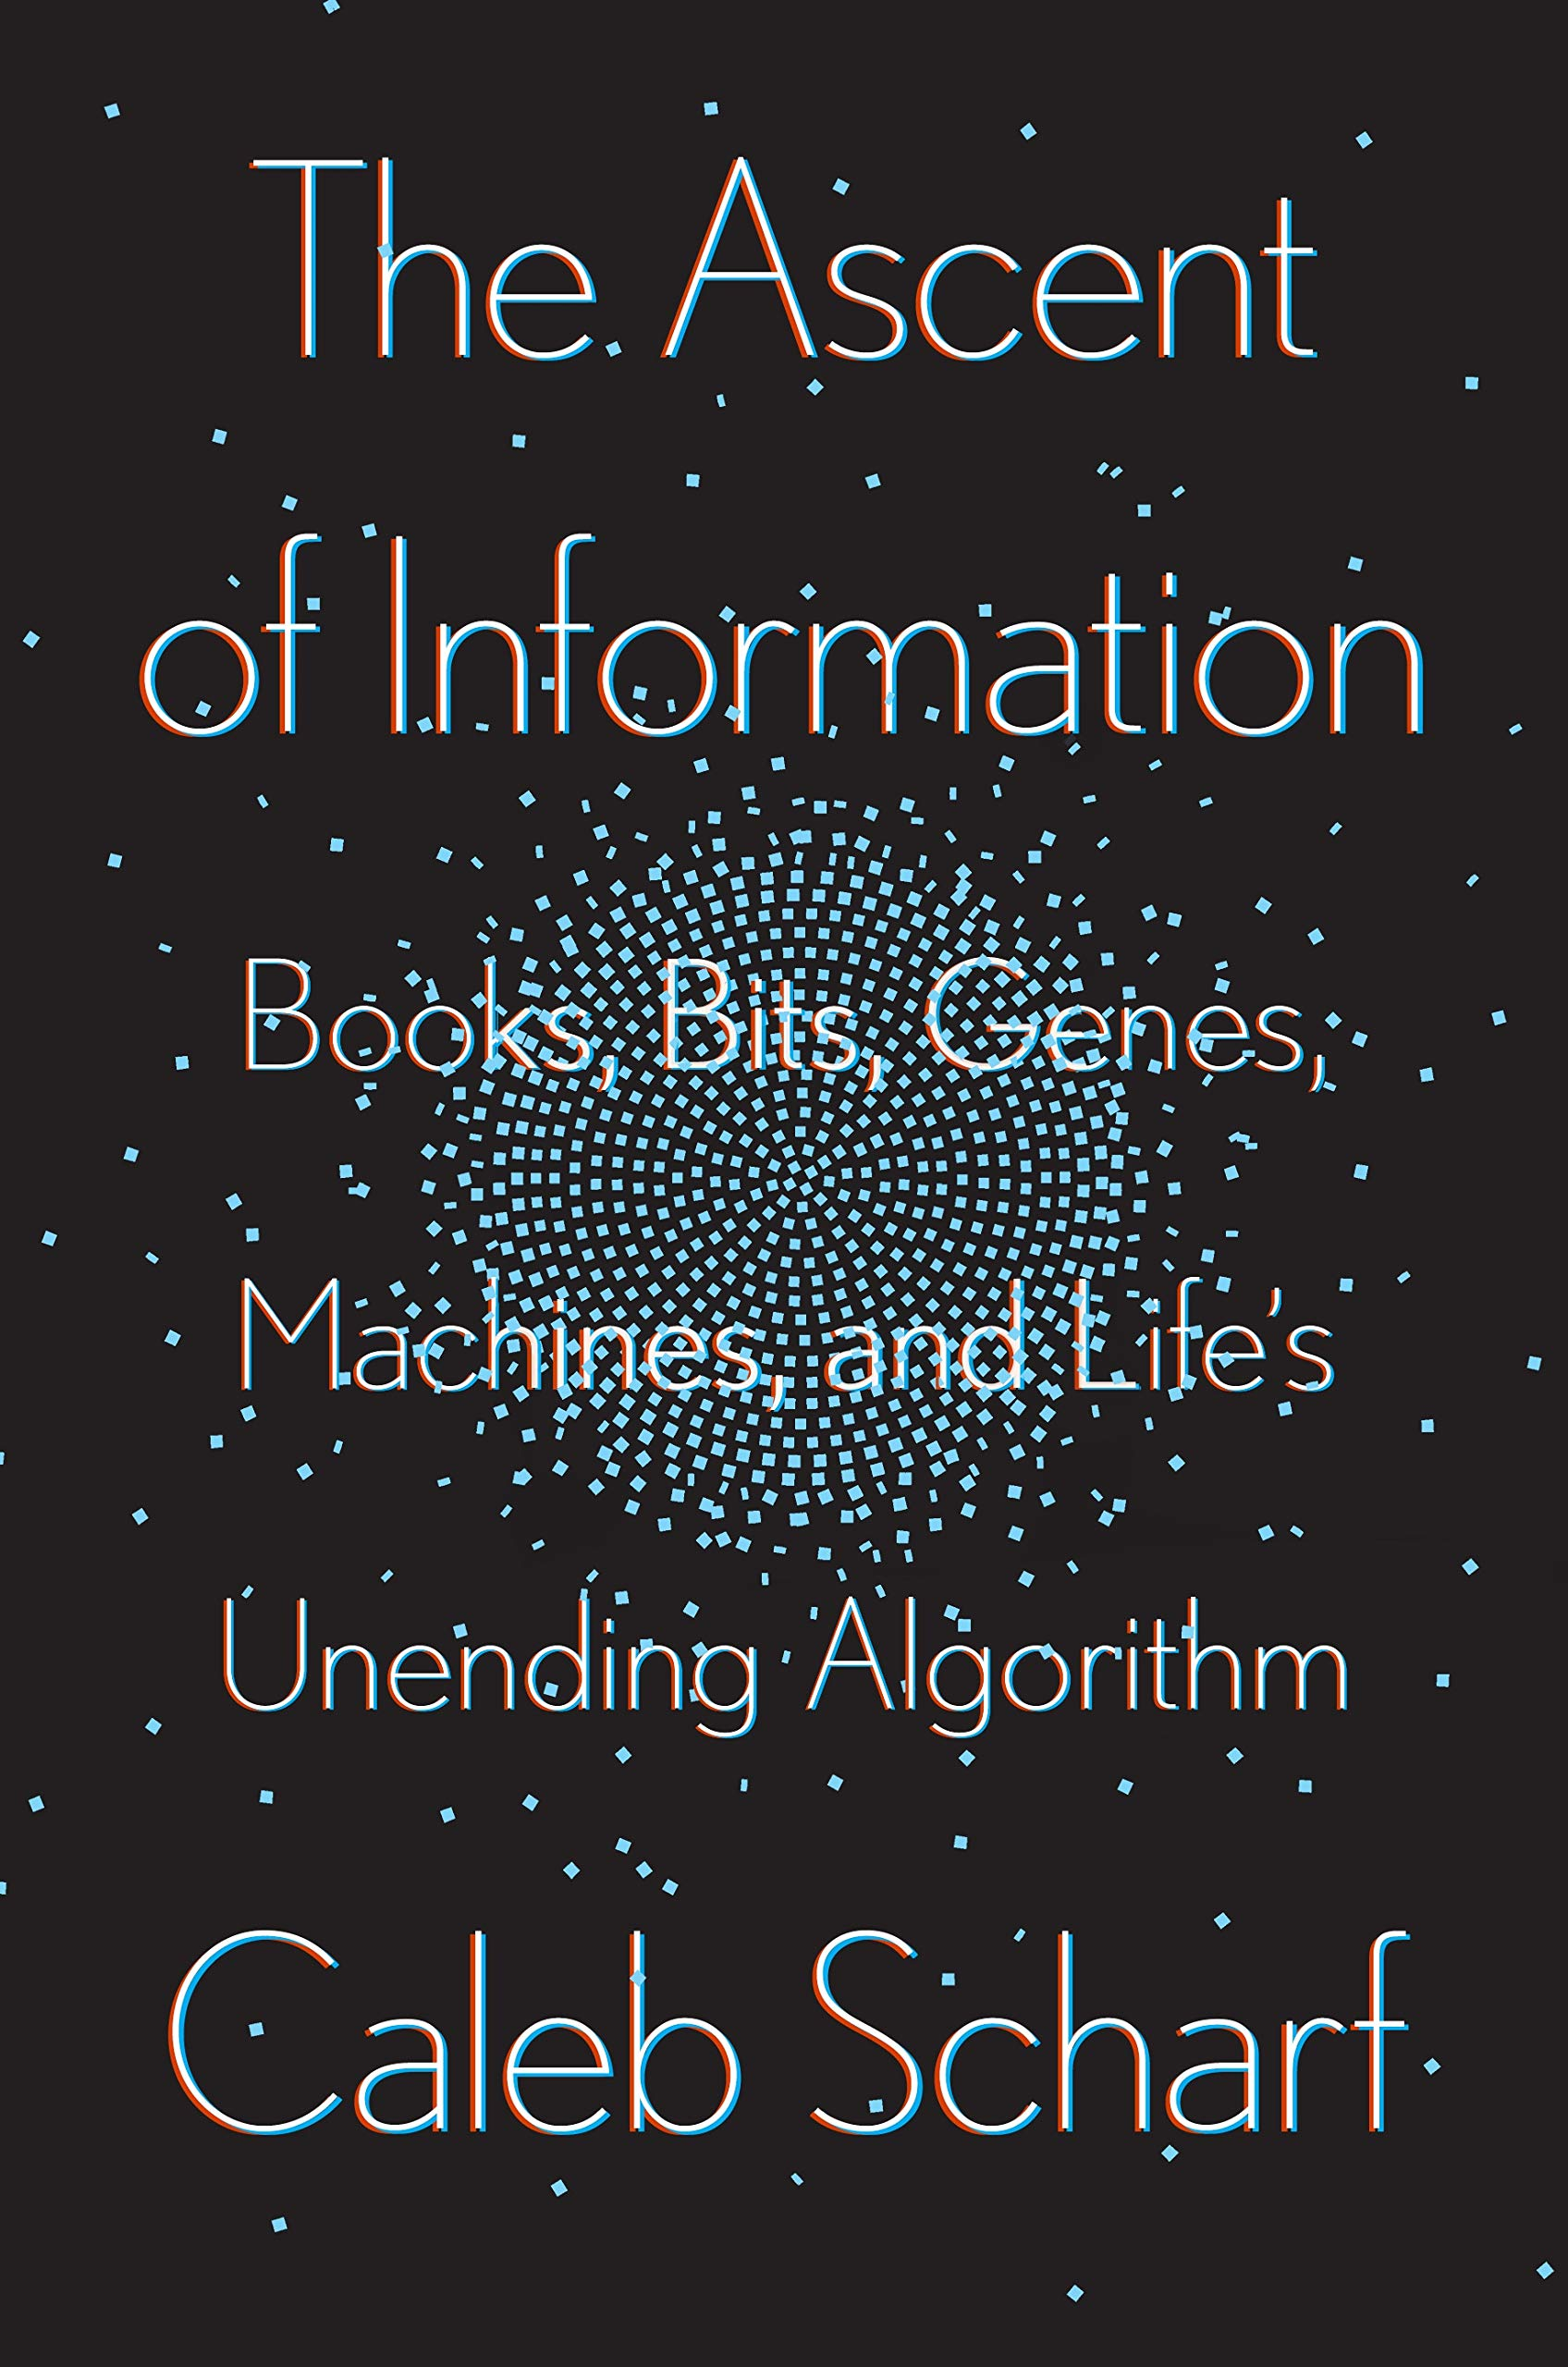 Caleb Scharf, The Ascent of Information: Books, Bits, Genes, Machines, and Life's Unending Algorithm